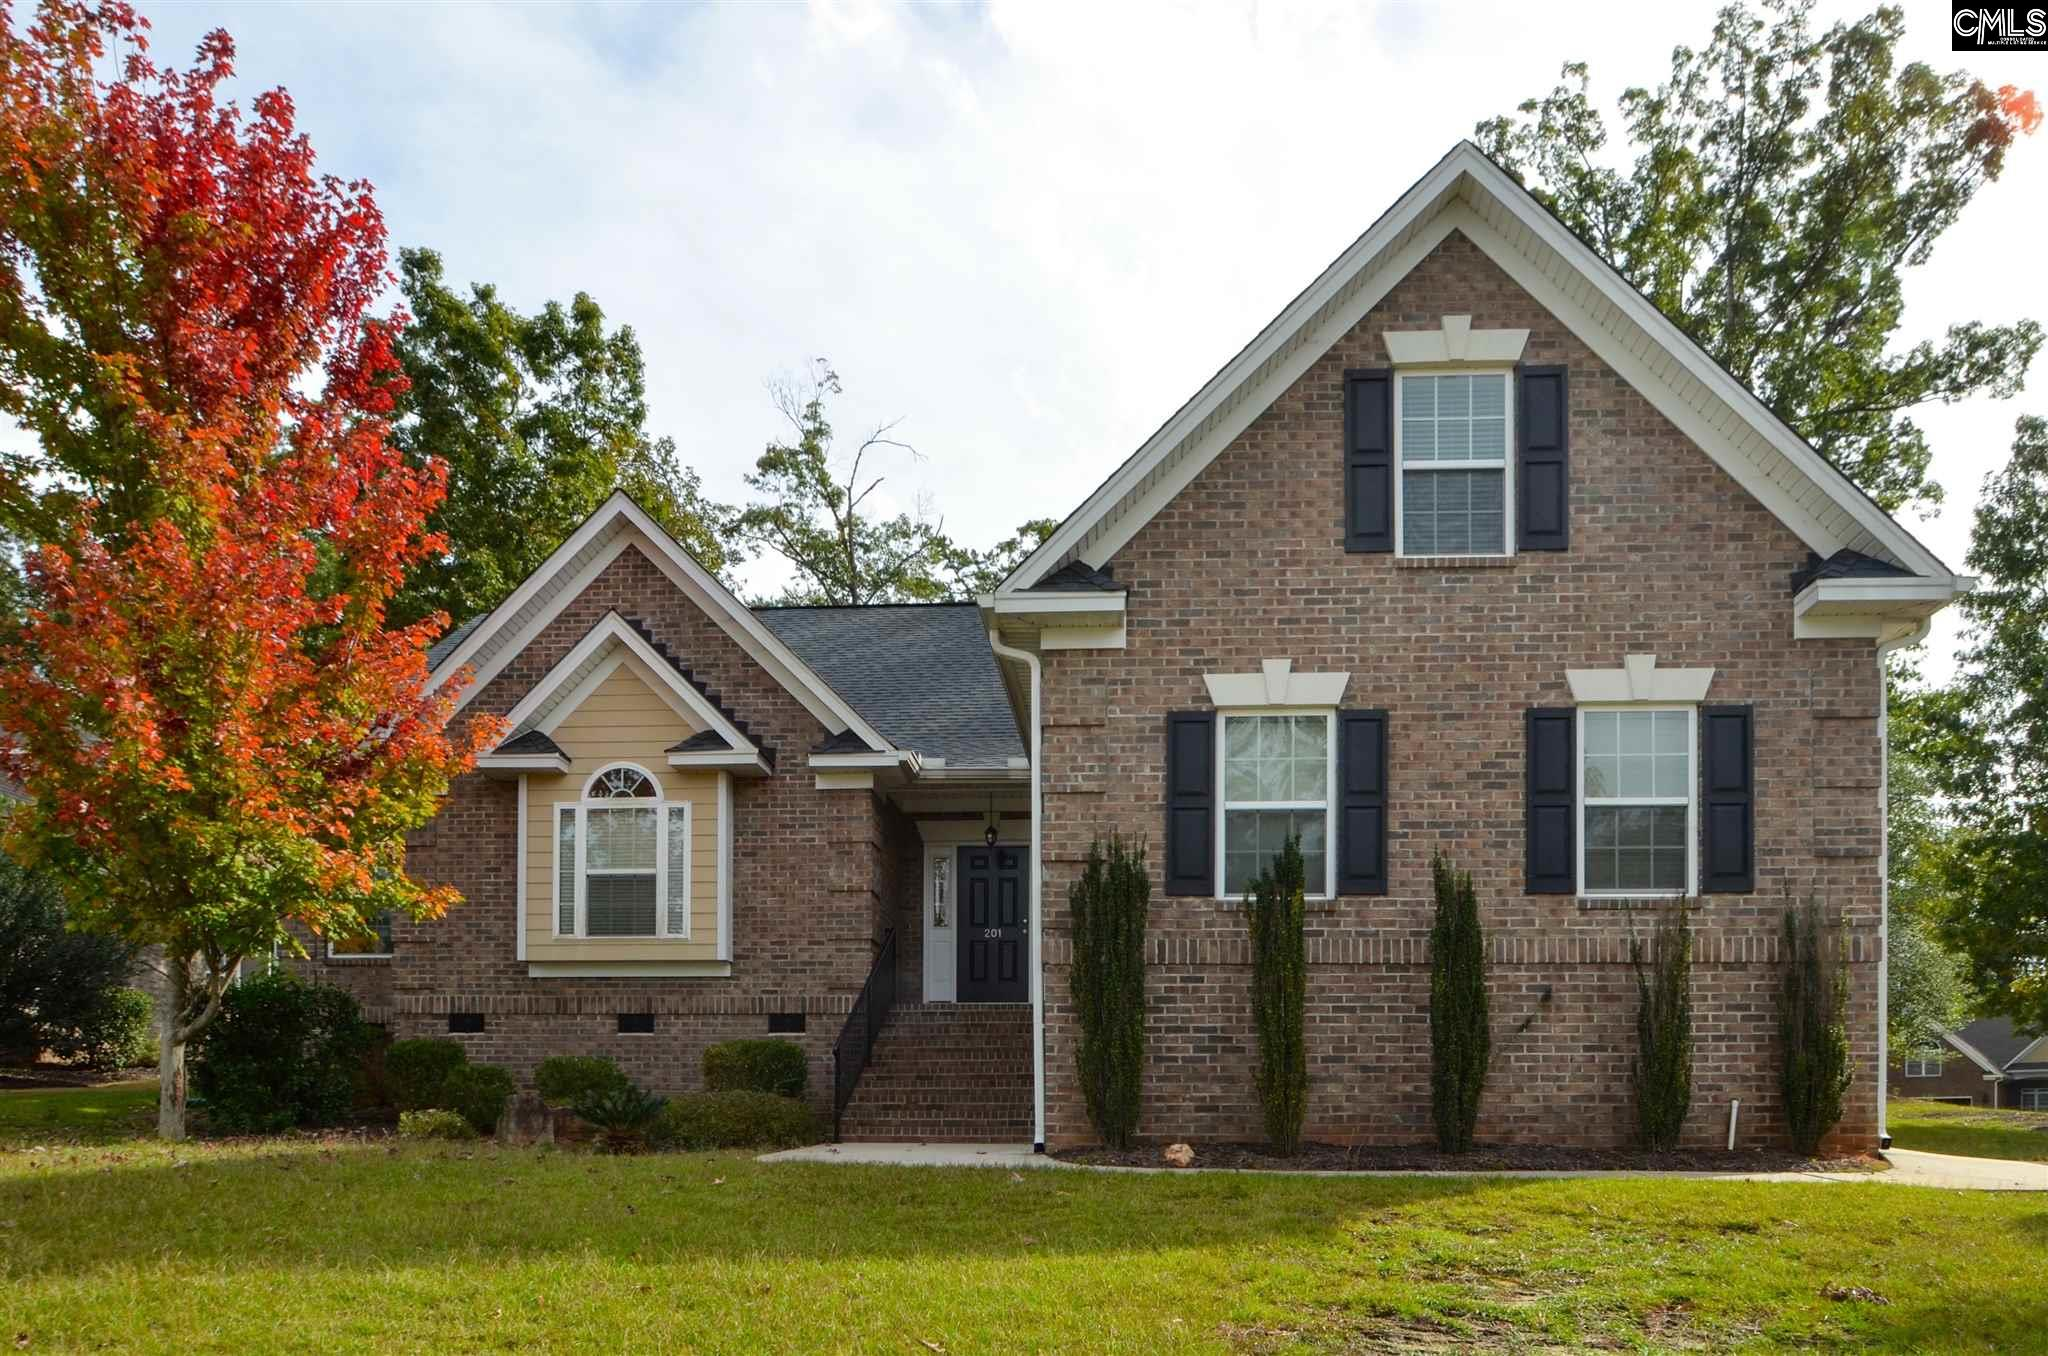 201 Quiet Cove Chapin, SC 29036